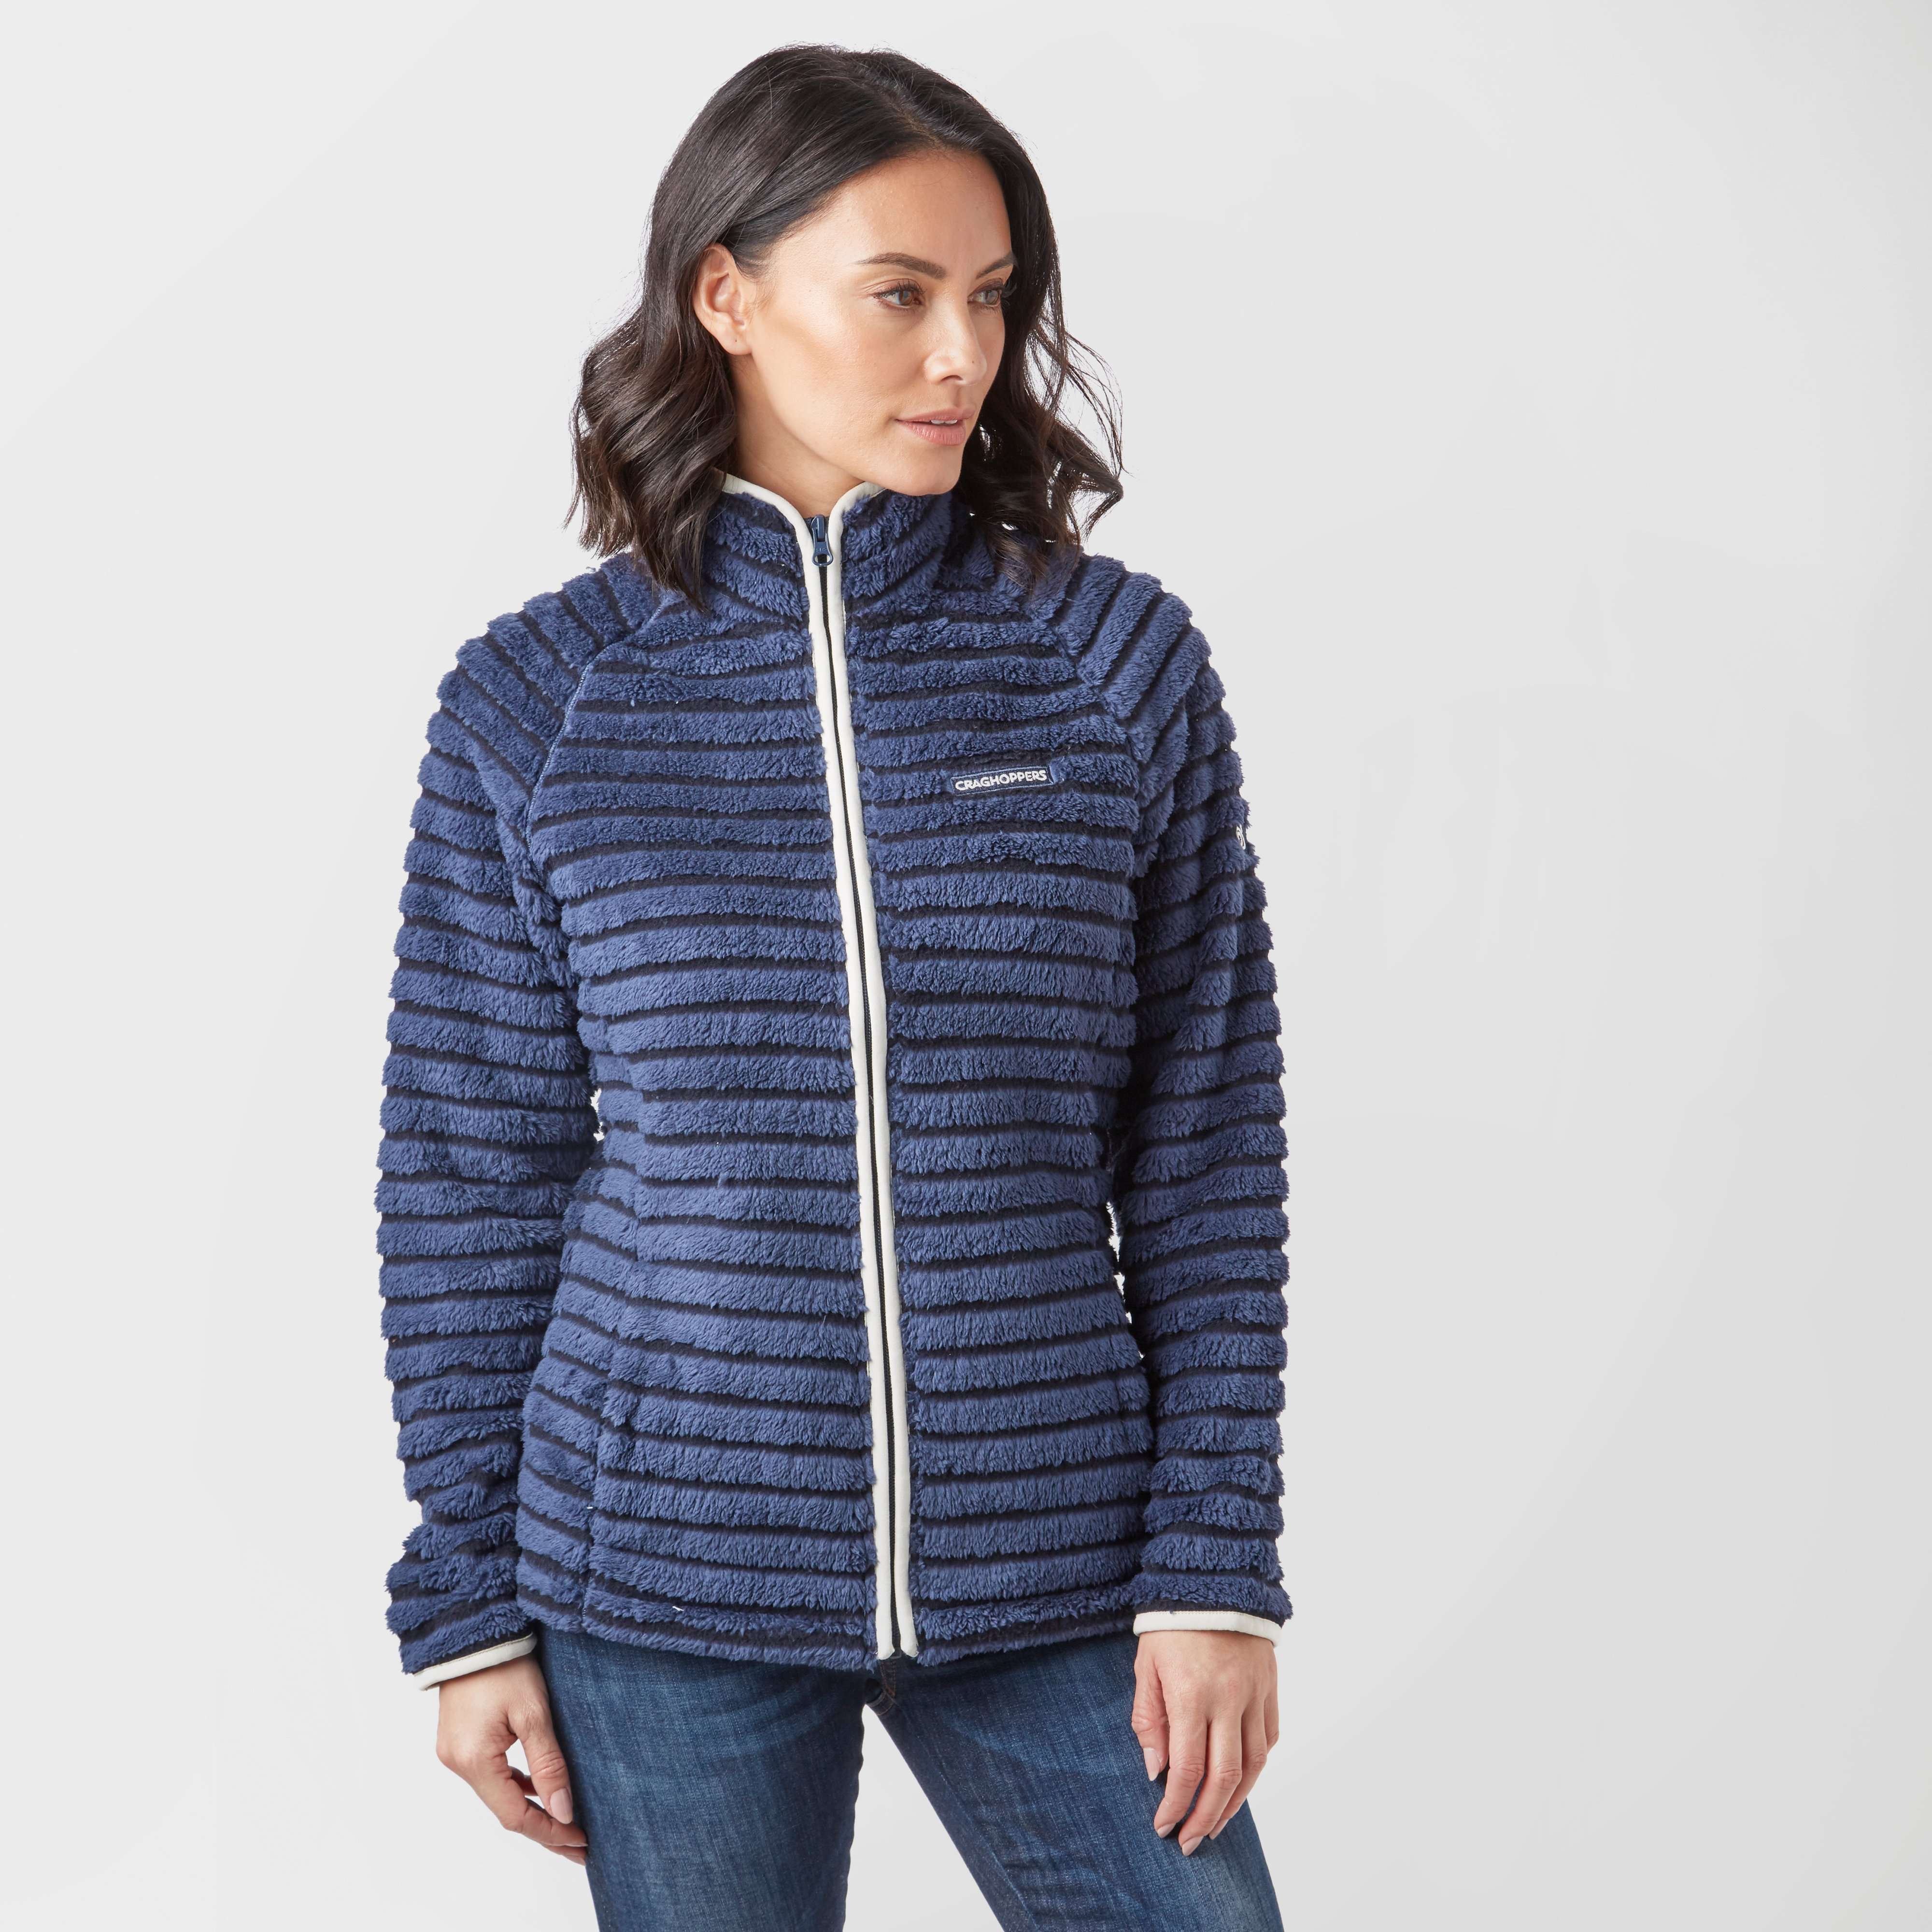 CRAGHOPPERS Women's Amberly Fleece